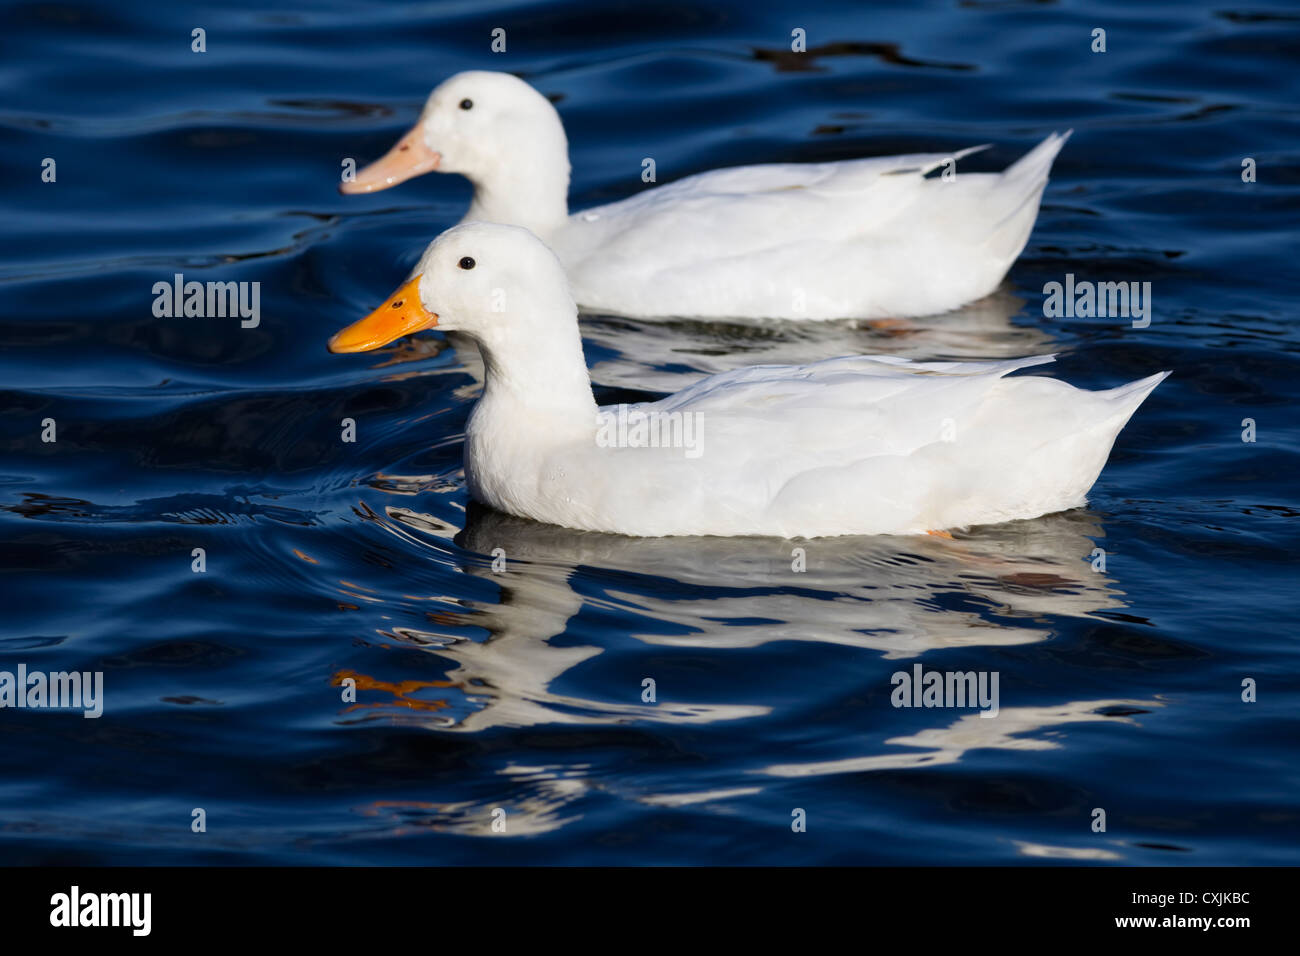 Domestic ducks (Anas platyrhynchos) in a pond, UK - Stock Image